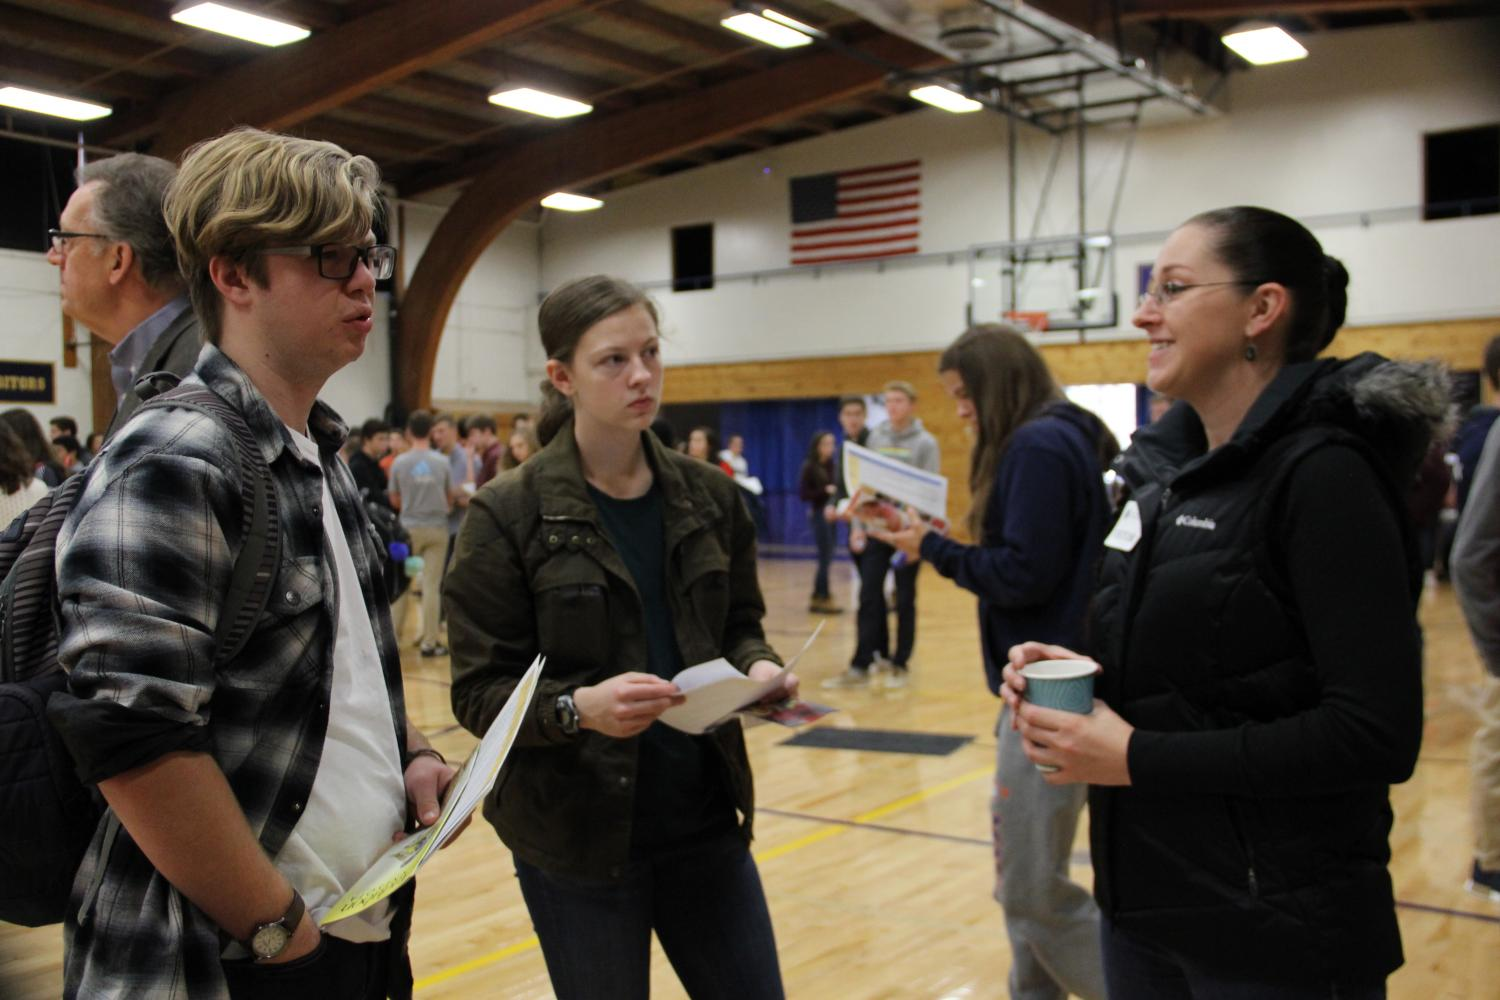 Students learn about the service opportunities available from a representative at the service fair.